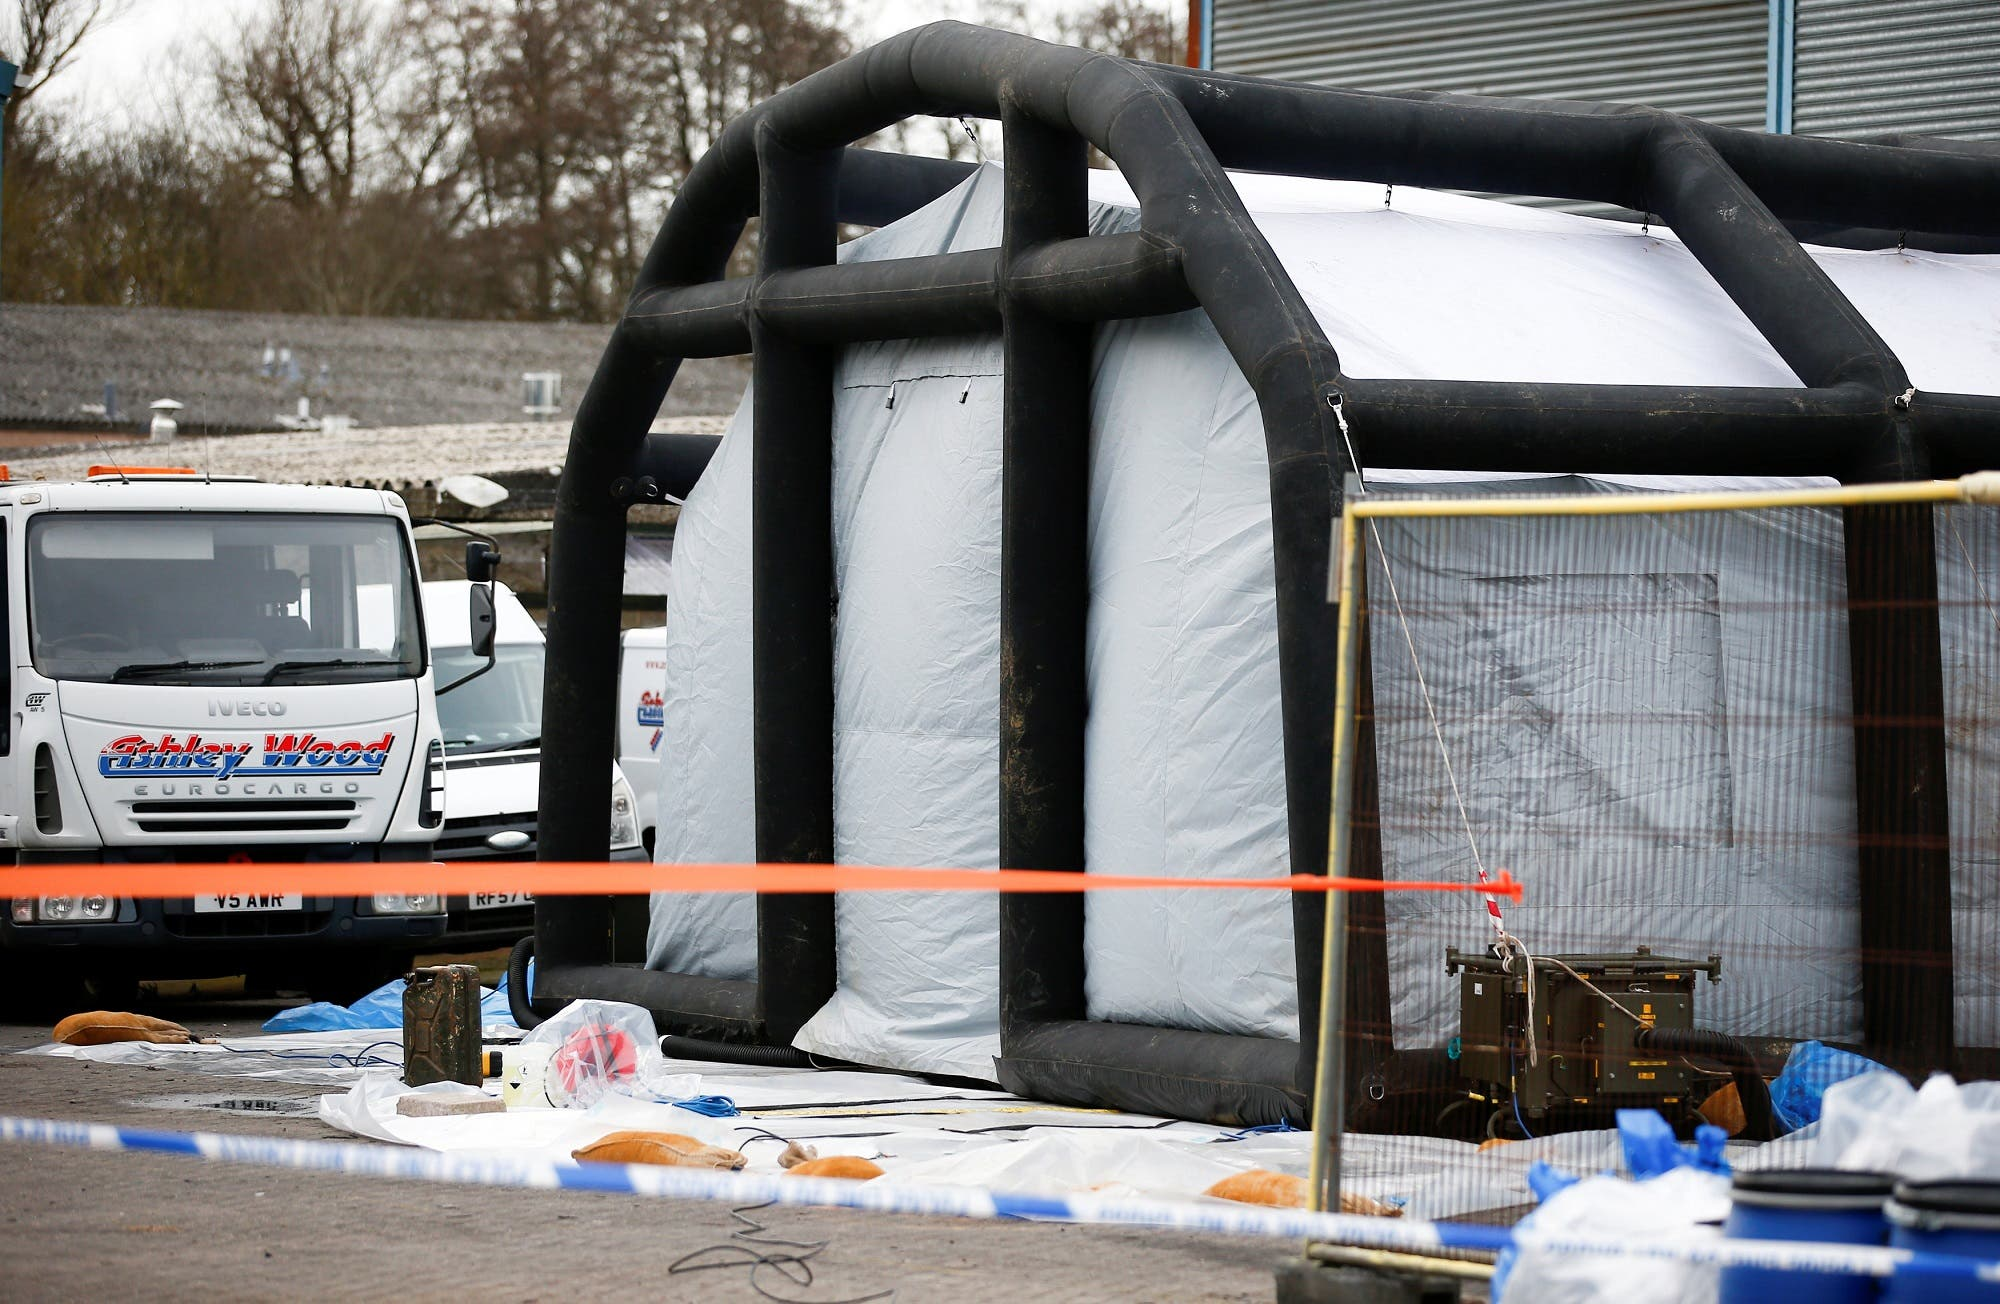 Police tape and bagged items are seen near an inflatable structure in the courtyard of Ashley Wood Recovery; where emergency services worked following the poisoning of former Russian intelligence officer Sergei Skripal and his daughter Yulia; in Salisbury, Britain, on March 14, 2018. (Reuters)